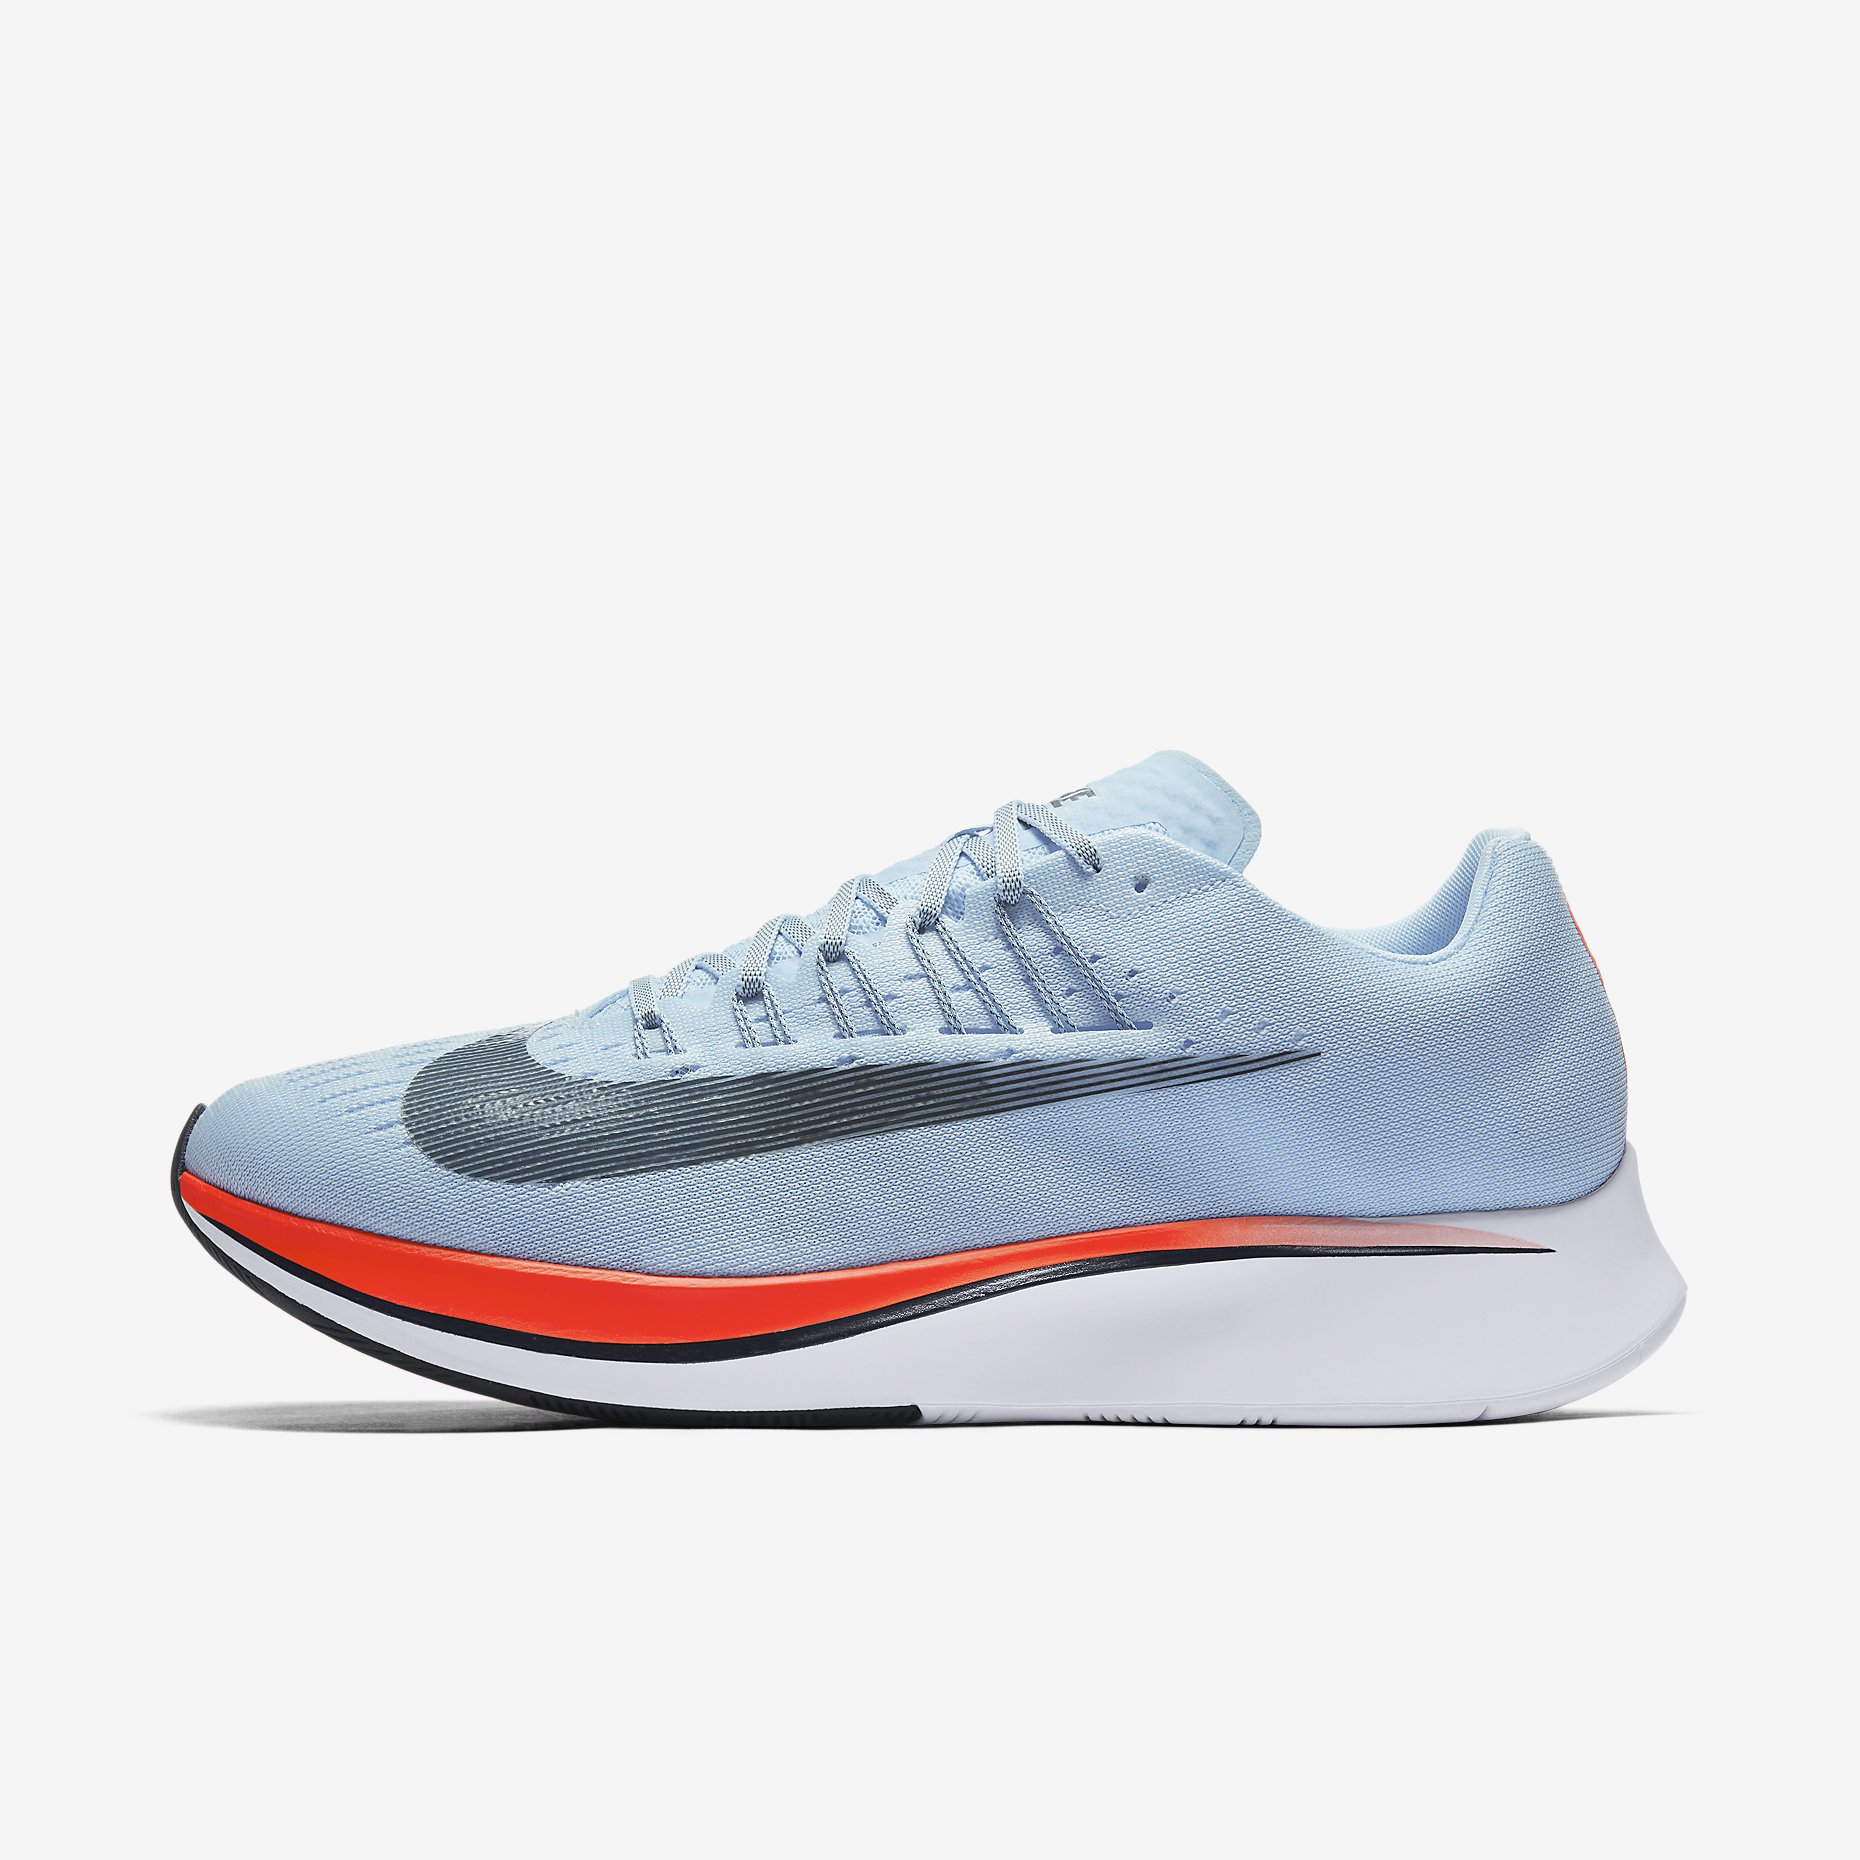 c6a4b2850b4 Nike Zoom Fly Men s Running Shoe - Sub 2 - Alton Sports